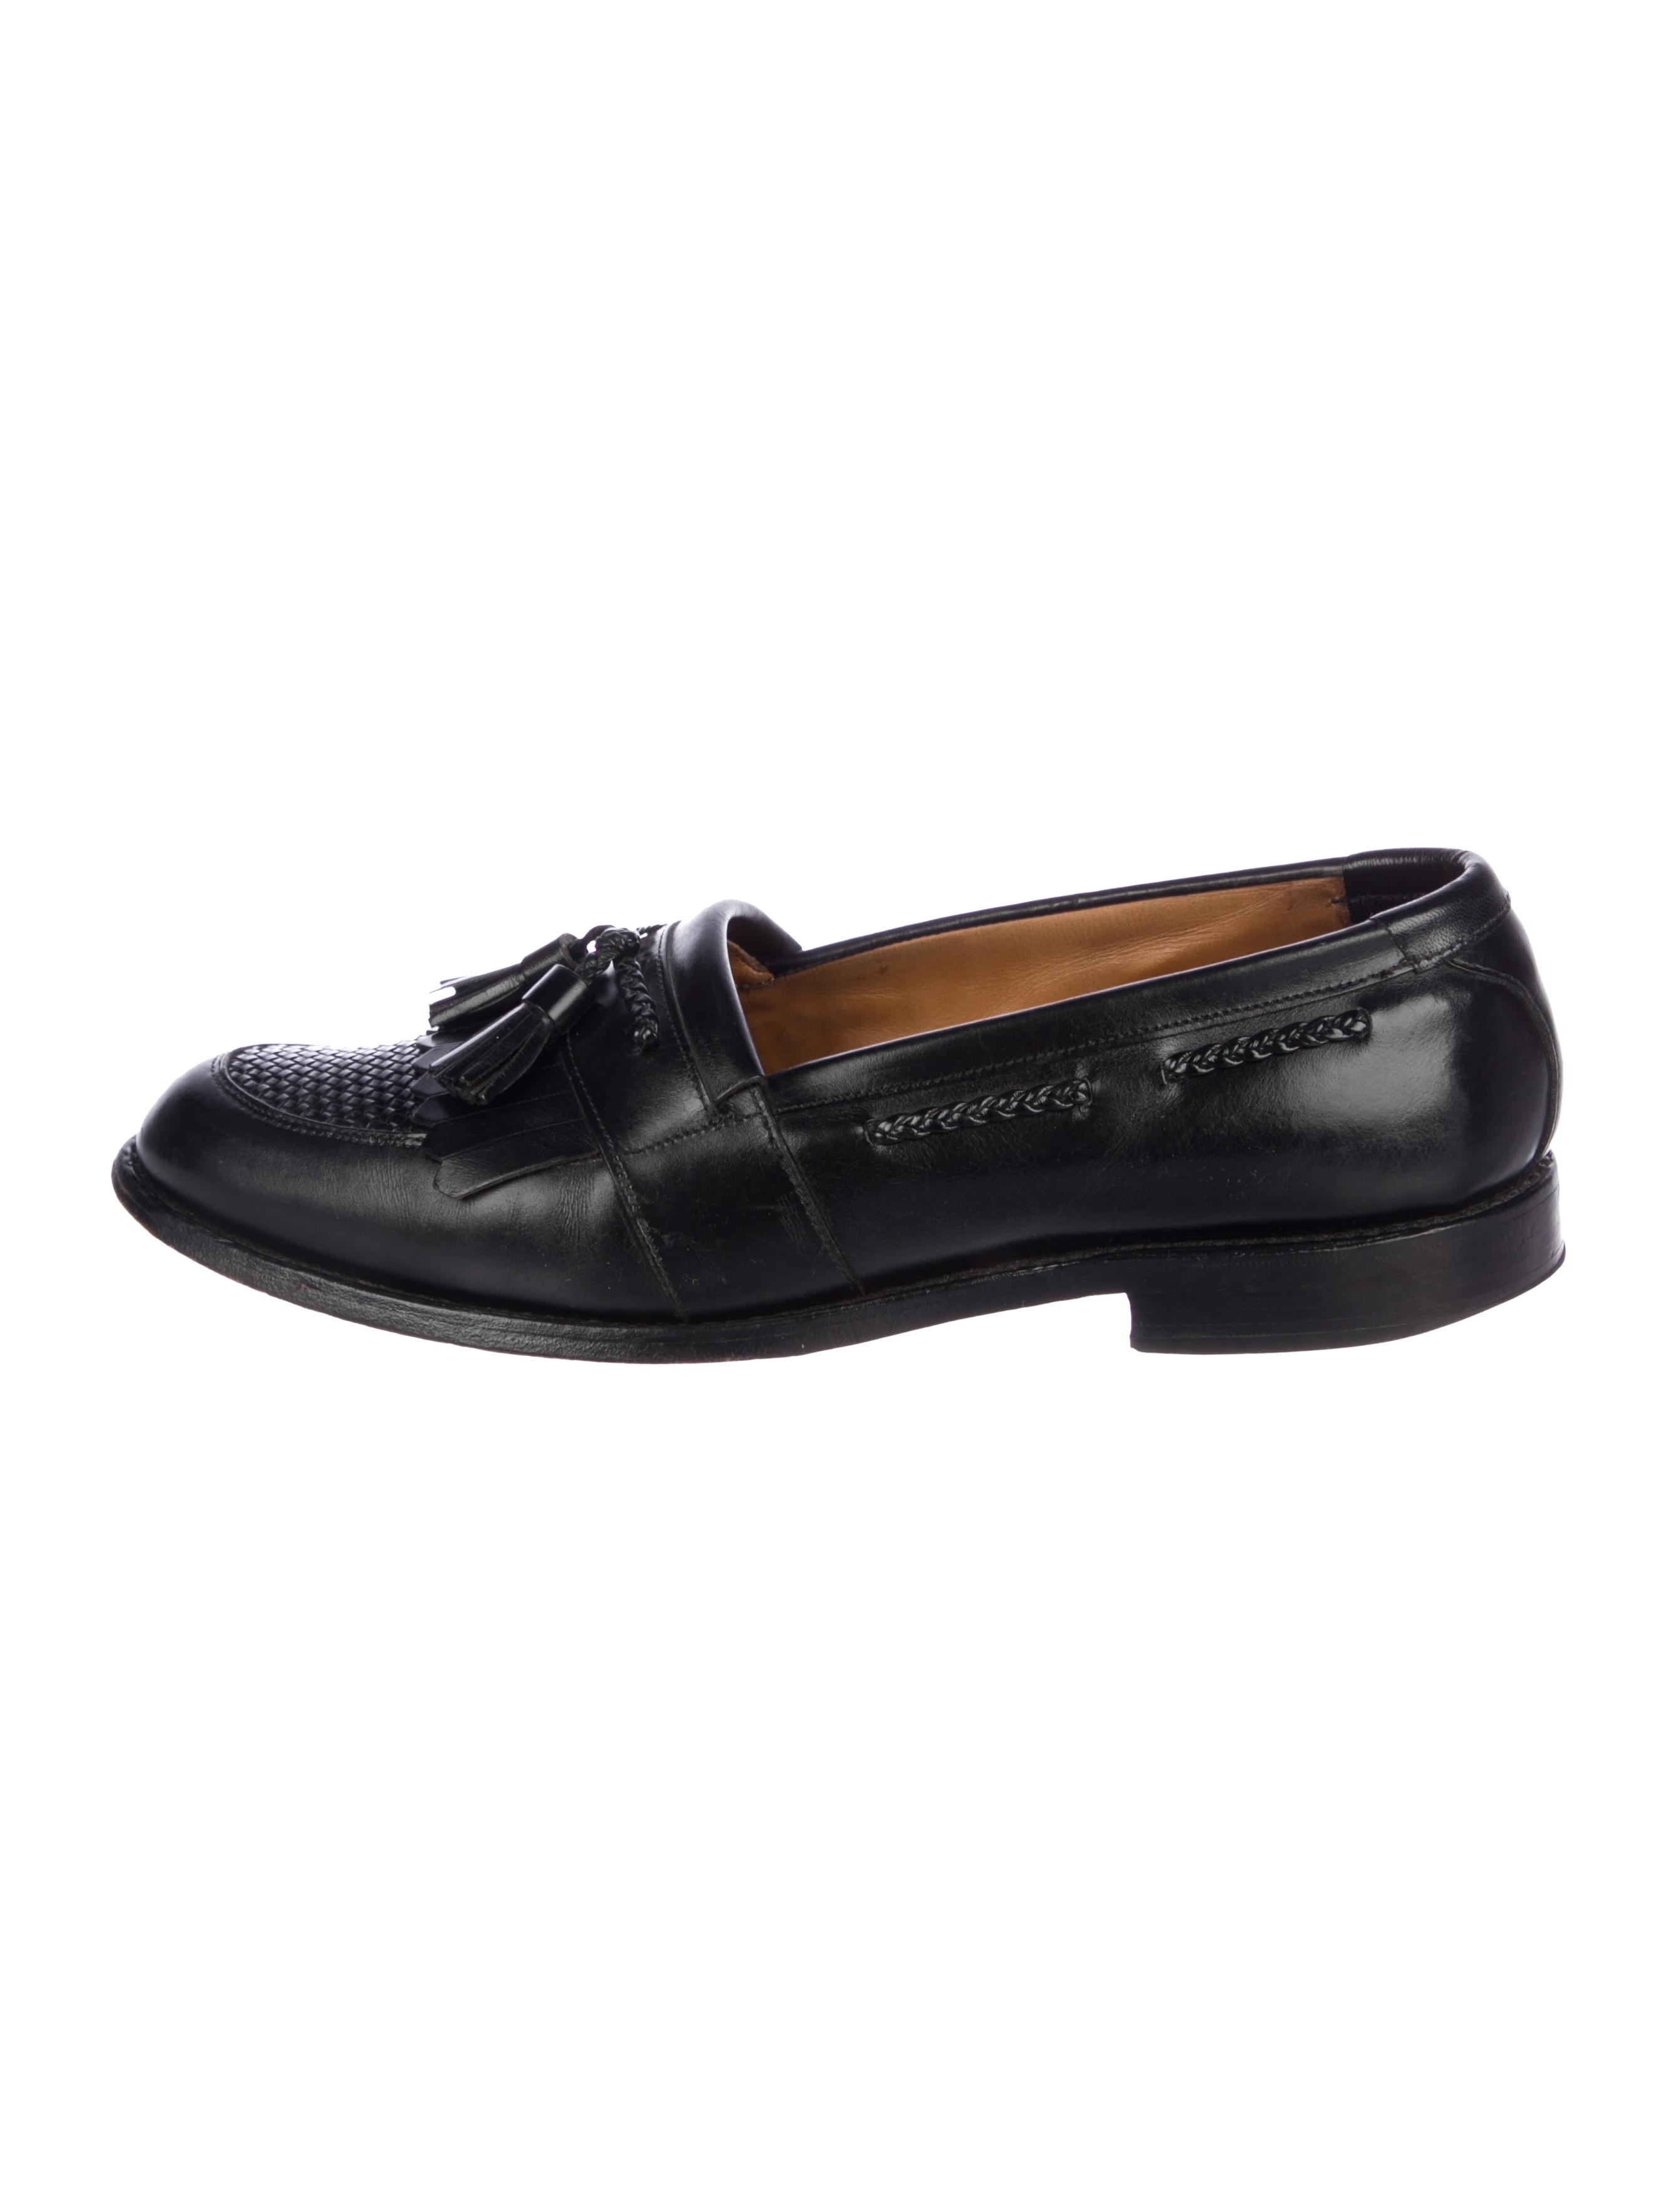 440890e73c13c Allen Edmonds Cody Tassel Loafers - Shoes - AED20333 | The RealReal